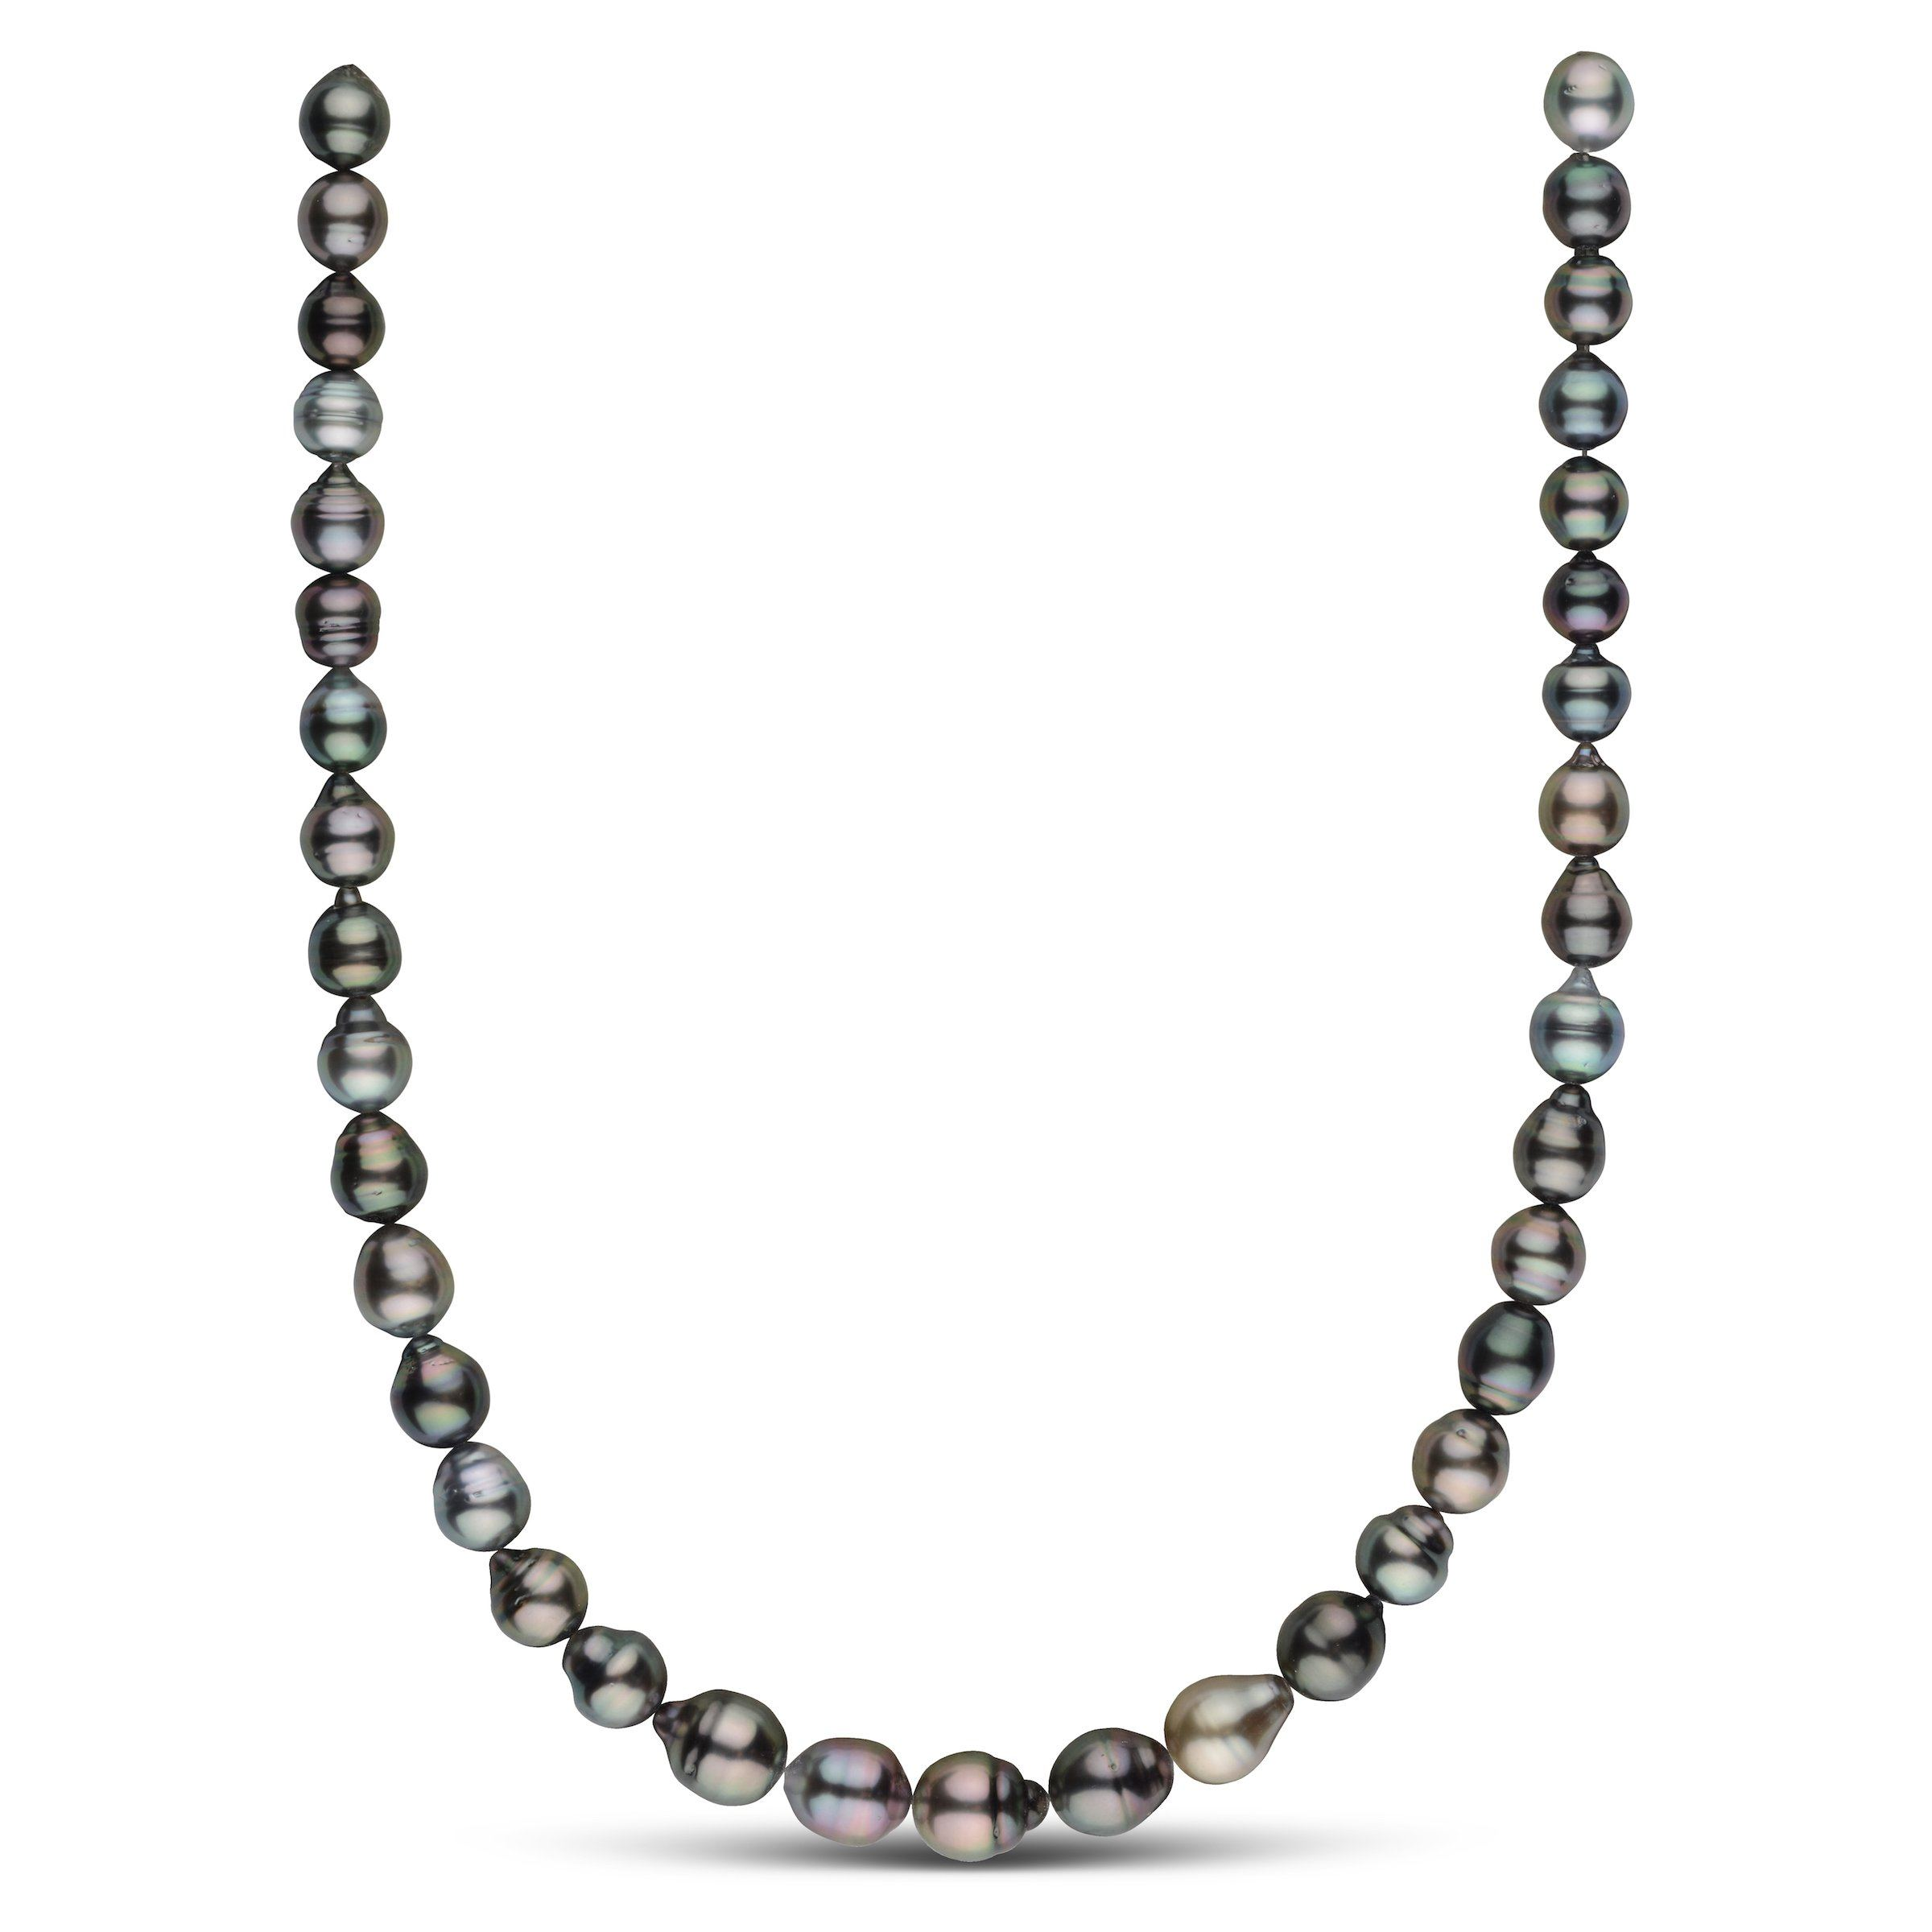 8.6-10.7 mm AA+/AAA Tahitian Baroque Pearl Necklace